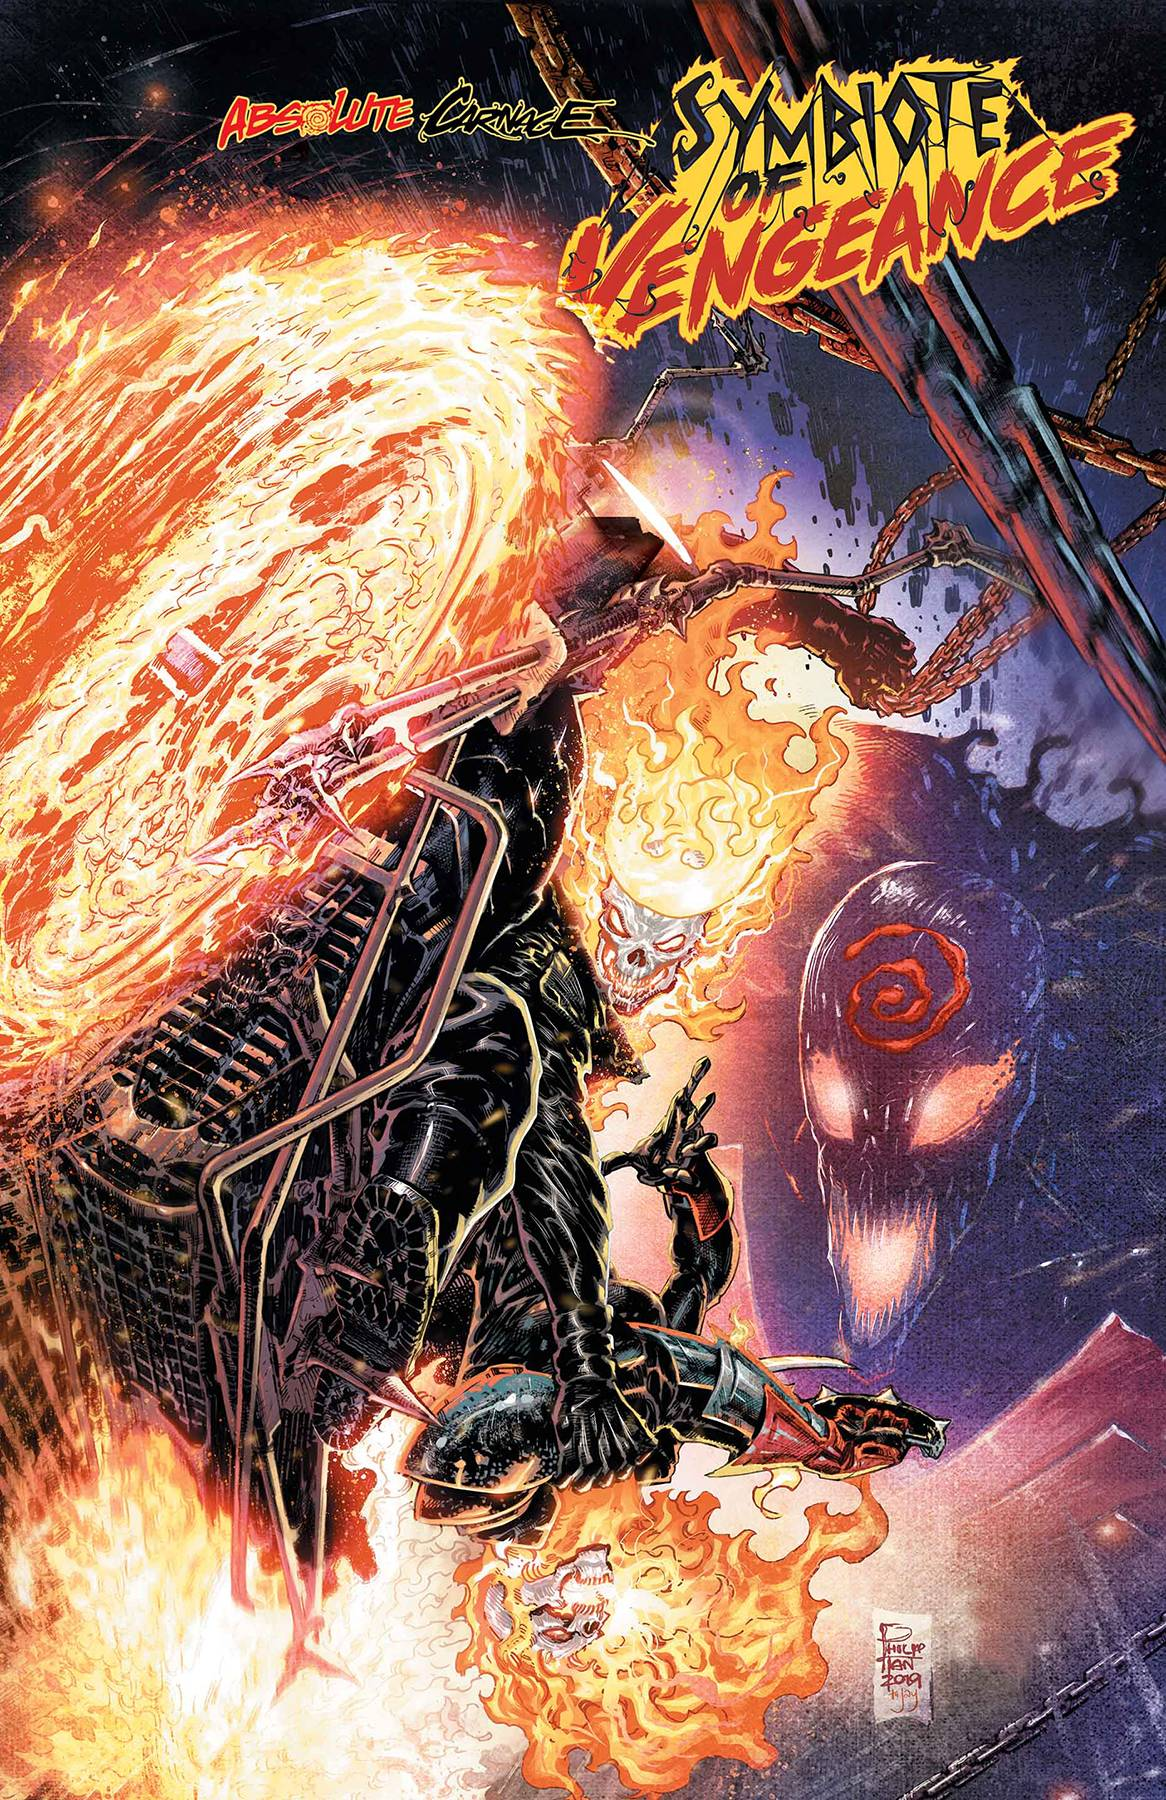 ABSOLUTE CARNAGE SYMBIOTE OF VENGEANCE 1 AC.jpg